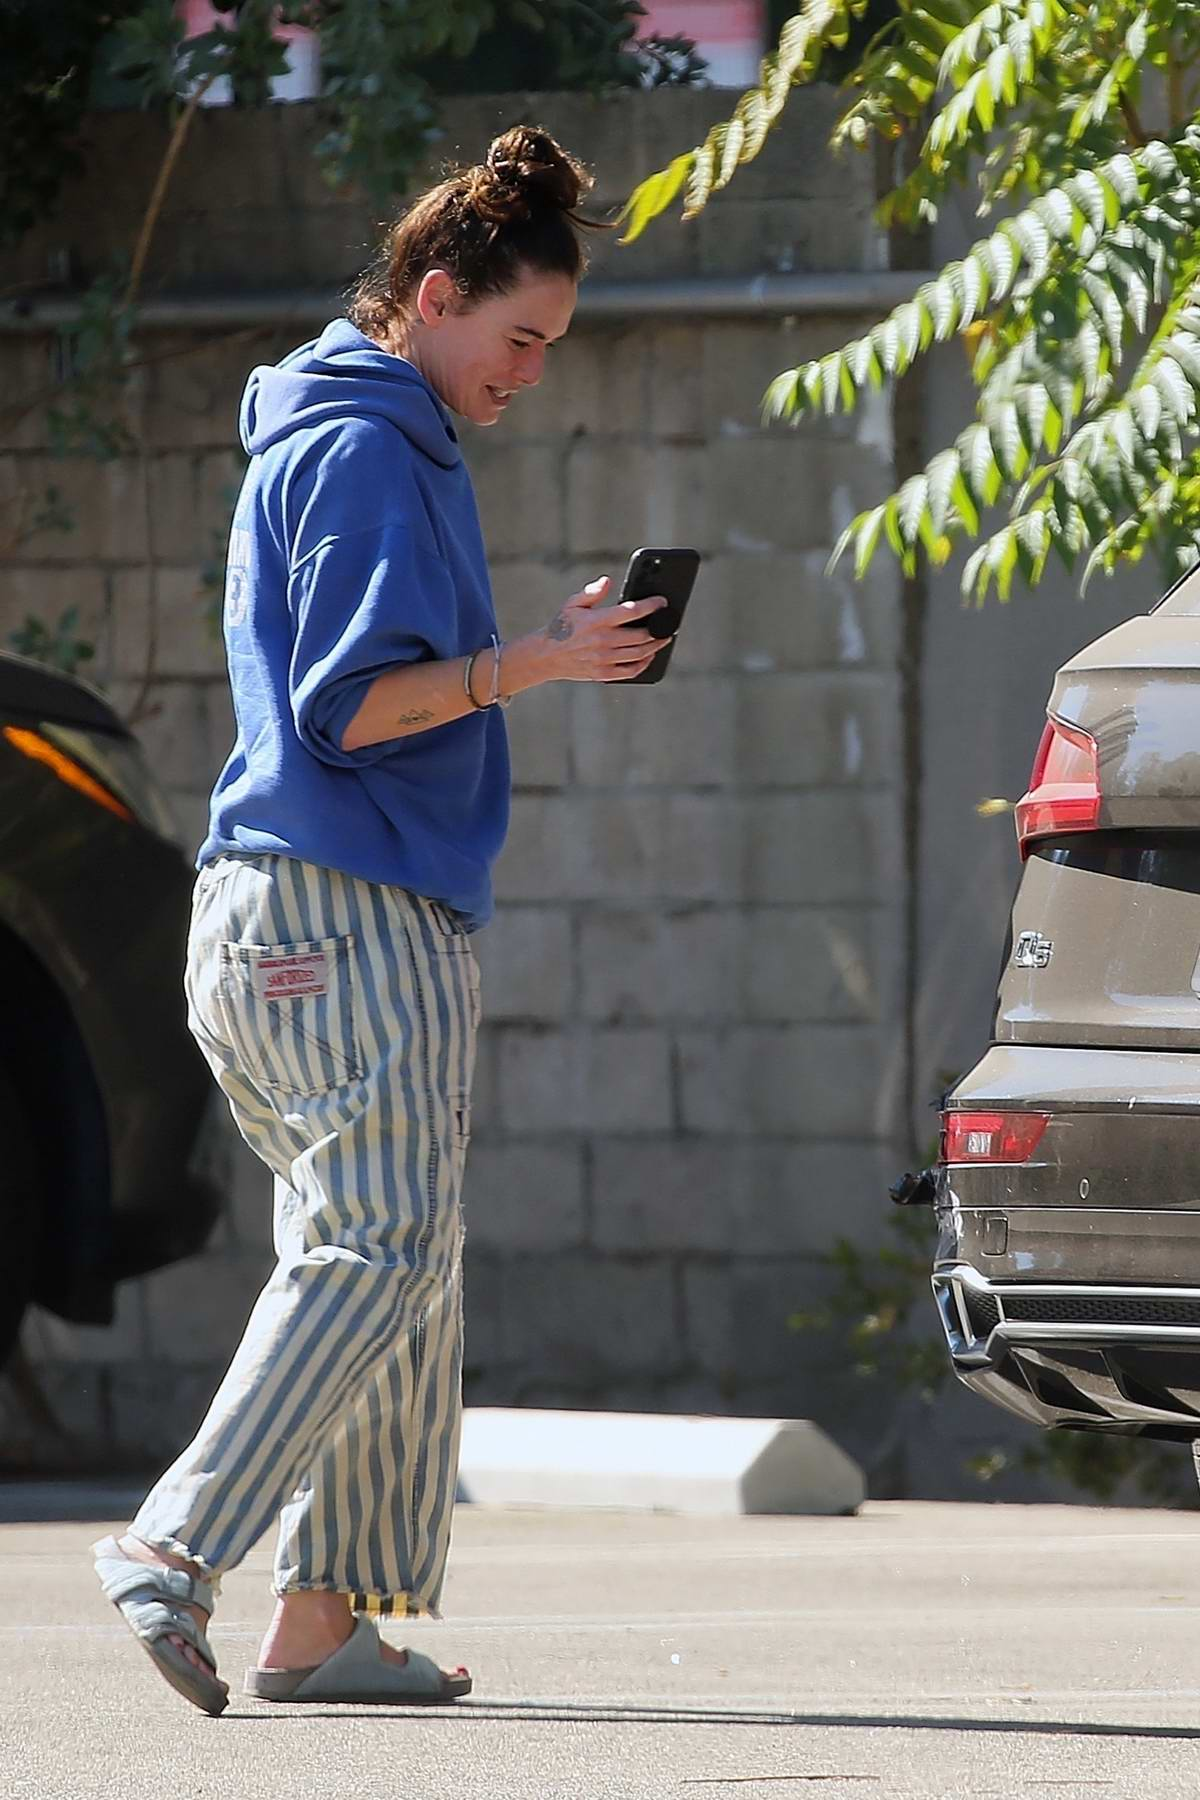 Lena Headey gets rear-ended in her brand new Audi while out running errands on Ventura Blvd in Encino, California